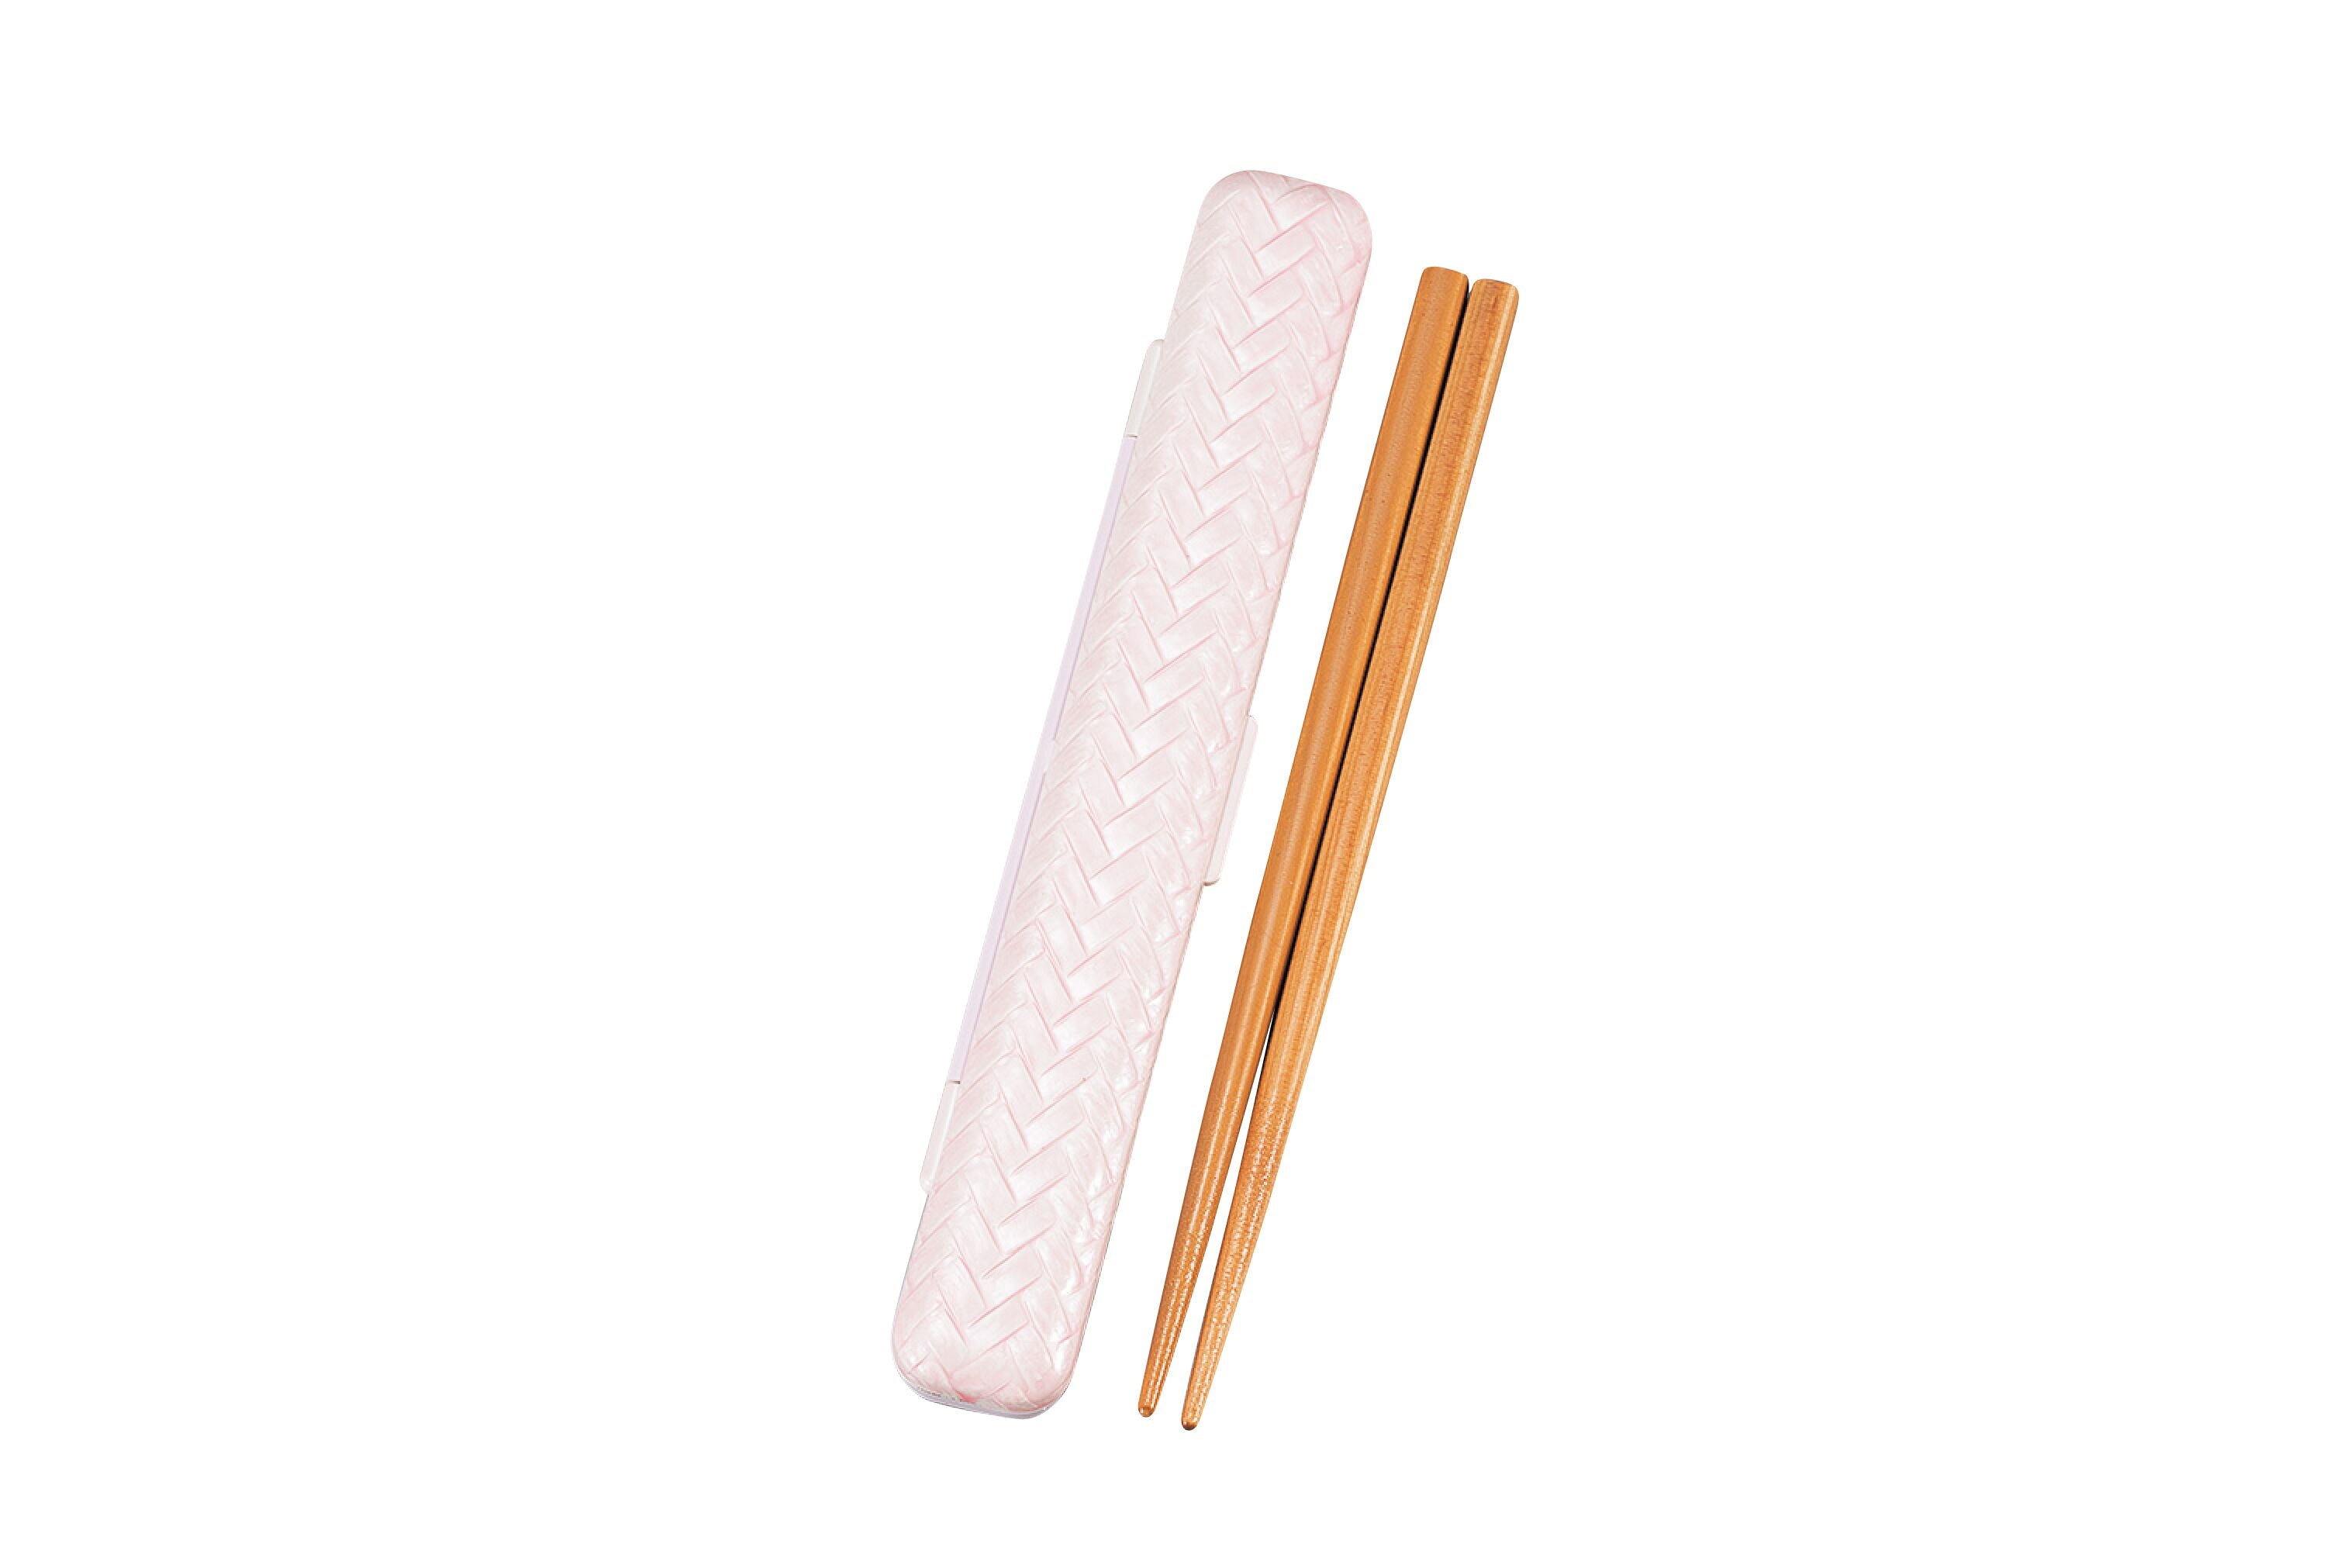 Ajiro Color Chopsticks Set | Pink by Hakoya - Bento&co Japanese Bento Lunch Boxes and Kitchenware Specialists